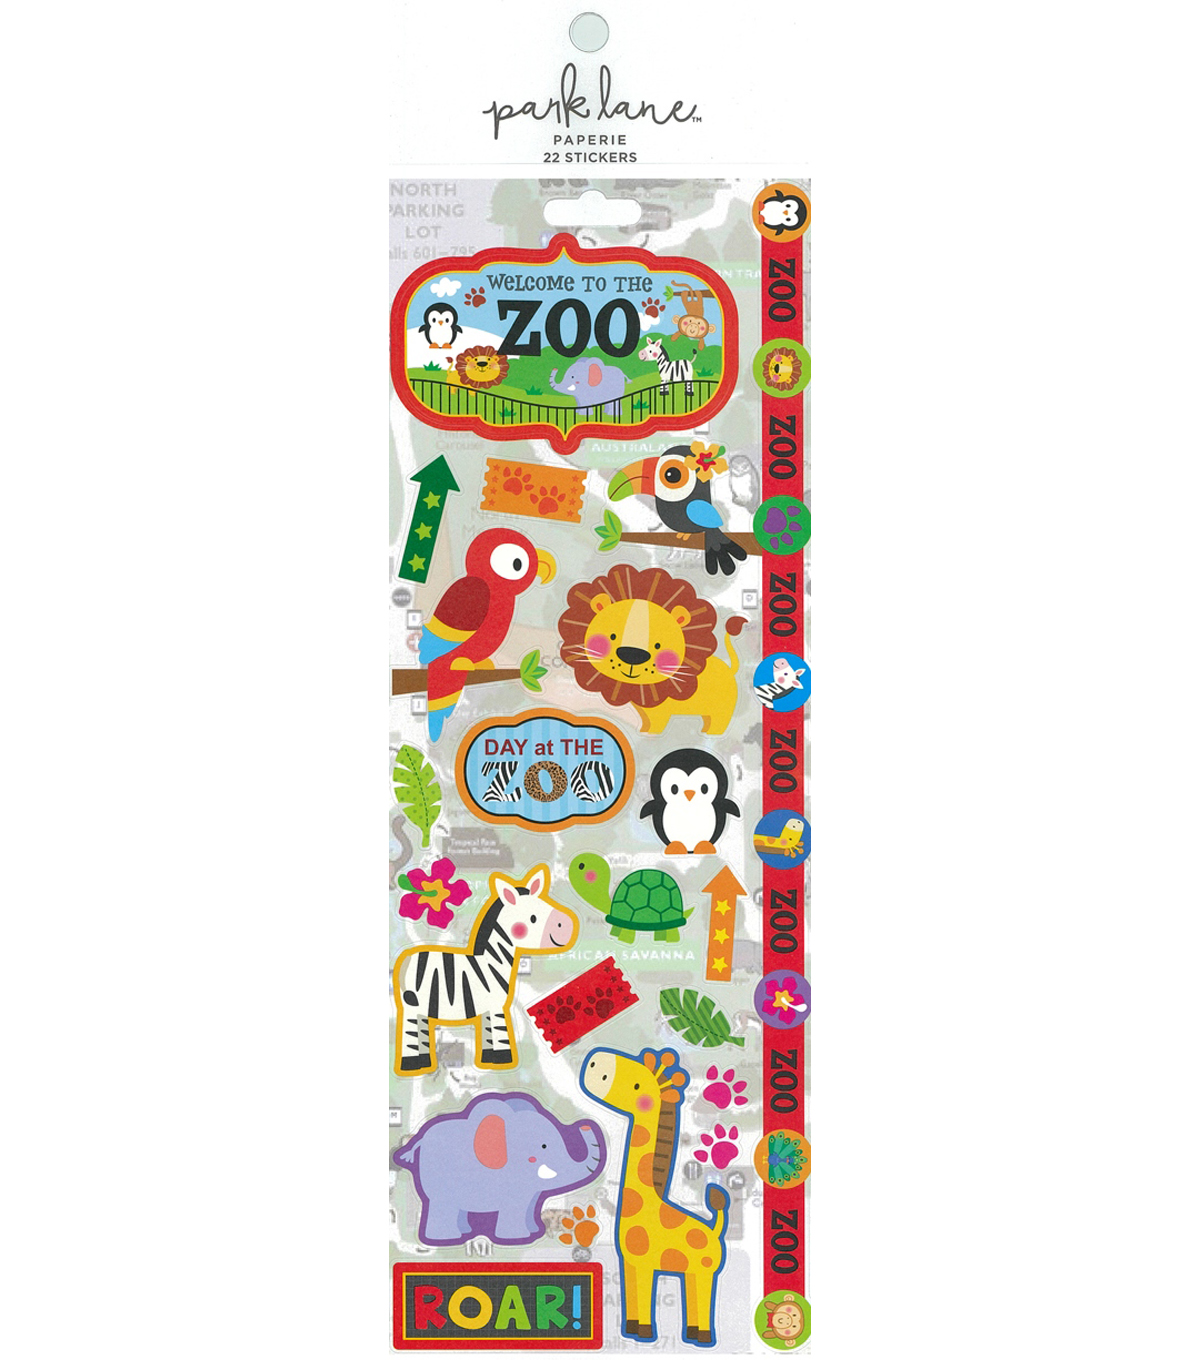 Park Lane Paperie 22 pk Cardstock Stickers-Zoo